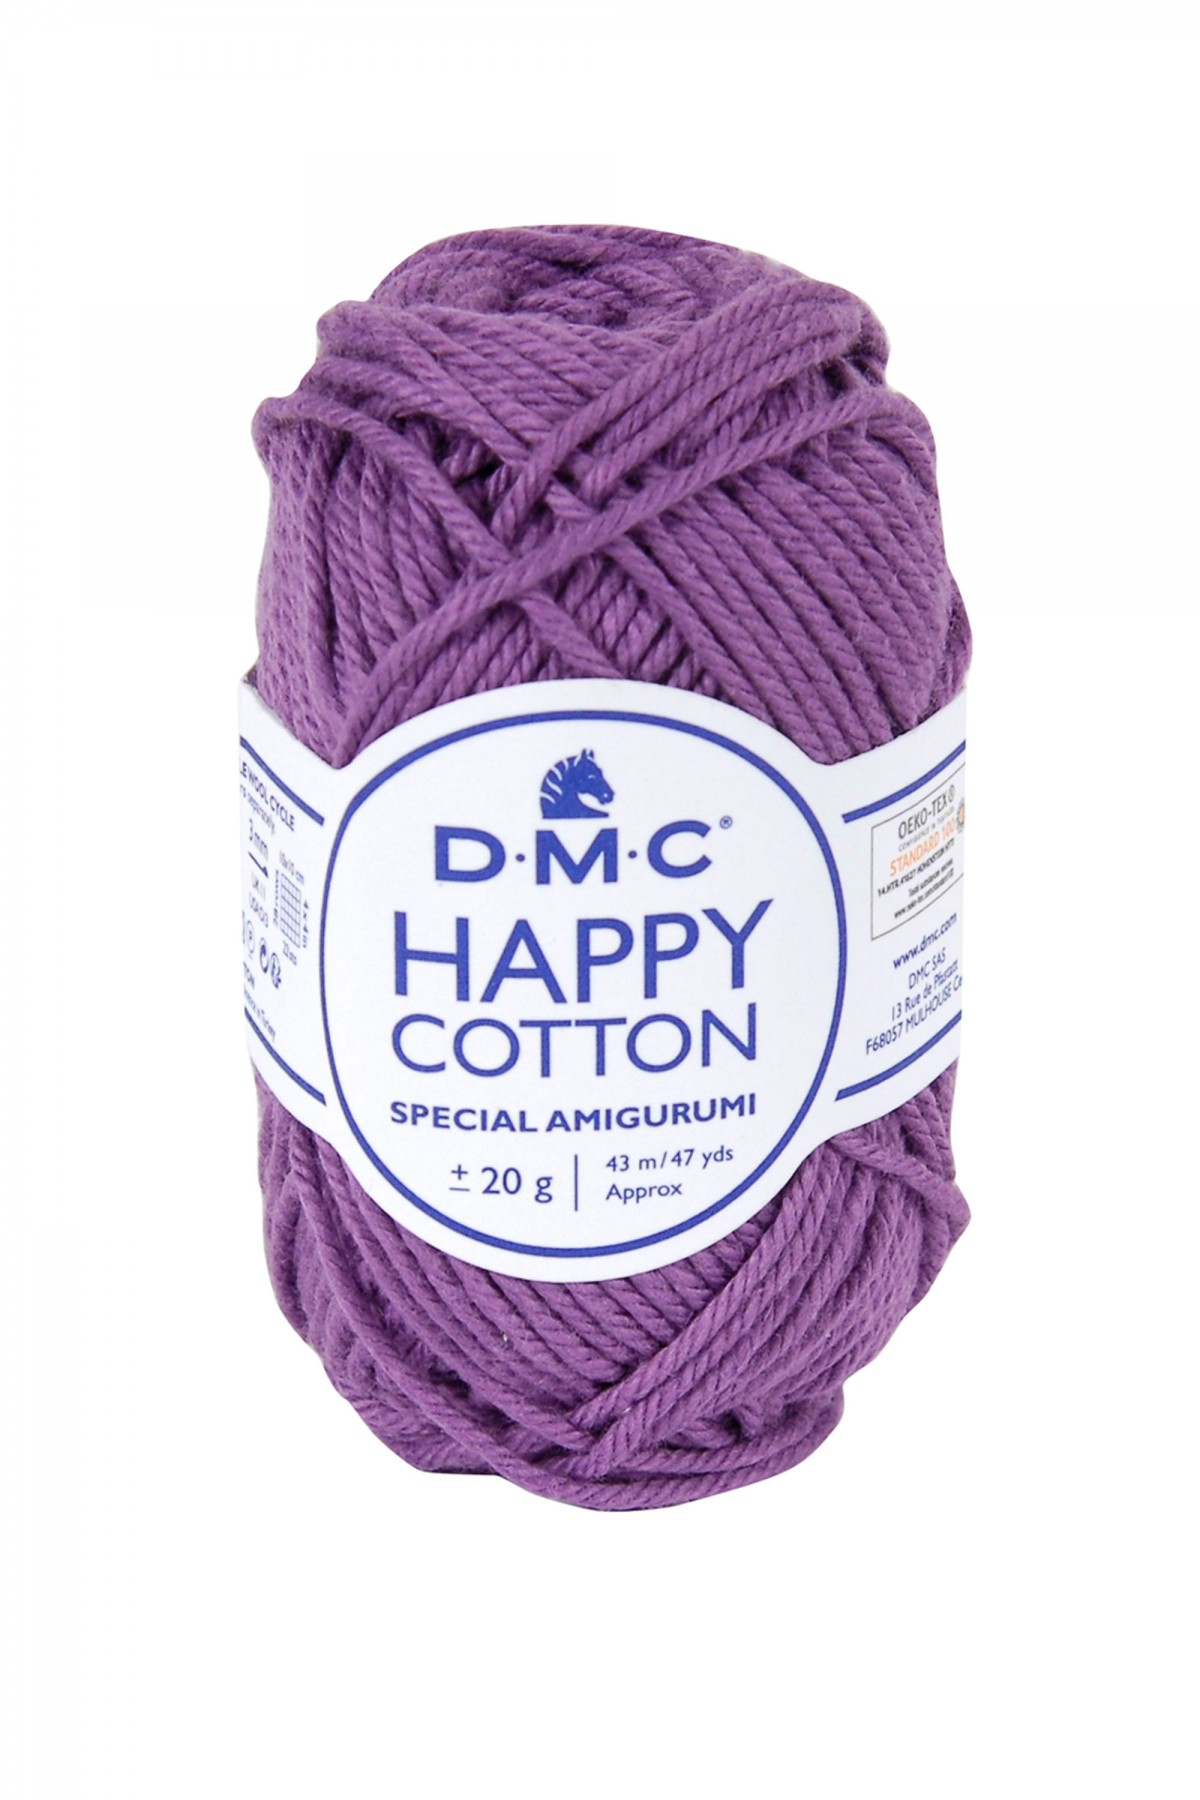 Hilo para amigurumis de algodón DMC Happy Cotton 756